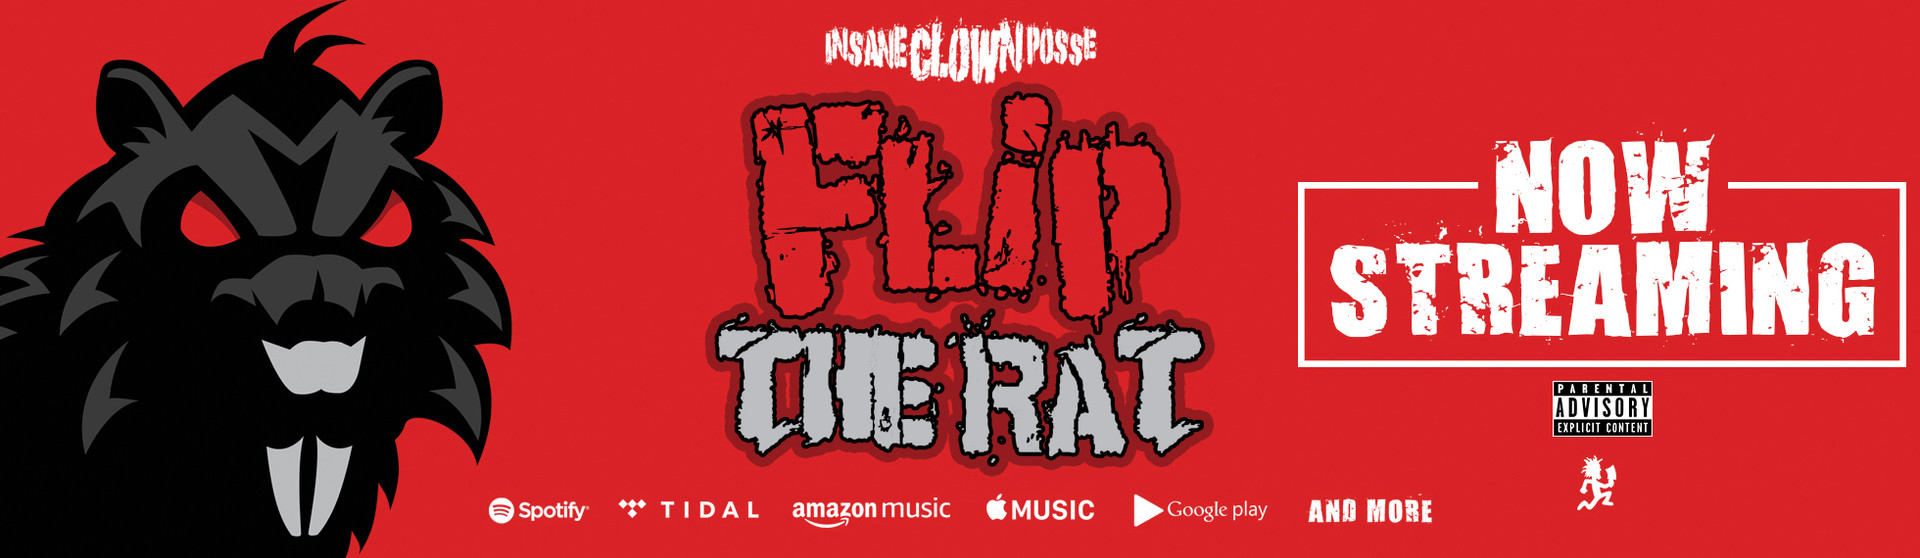 Flip The Rat Streaming Now!